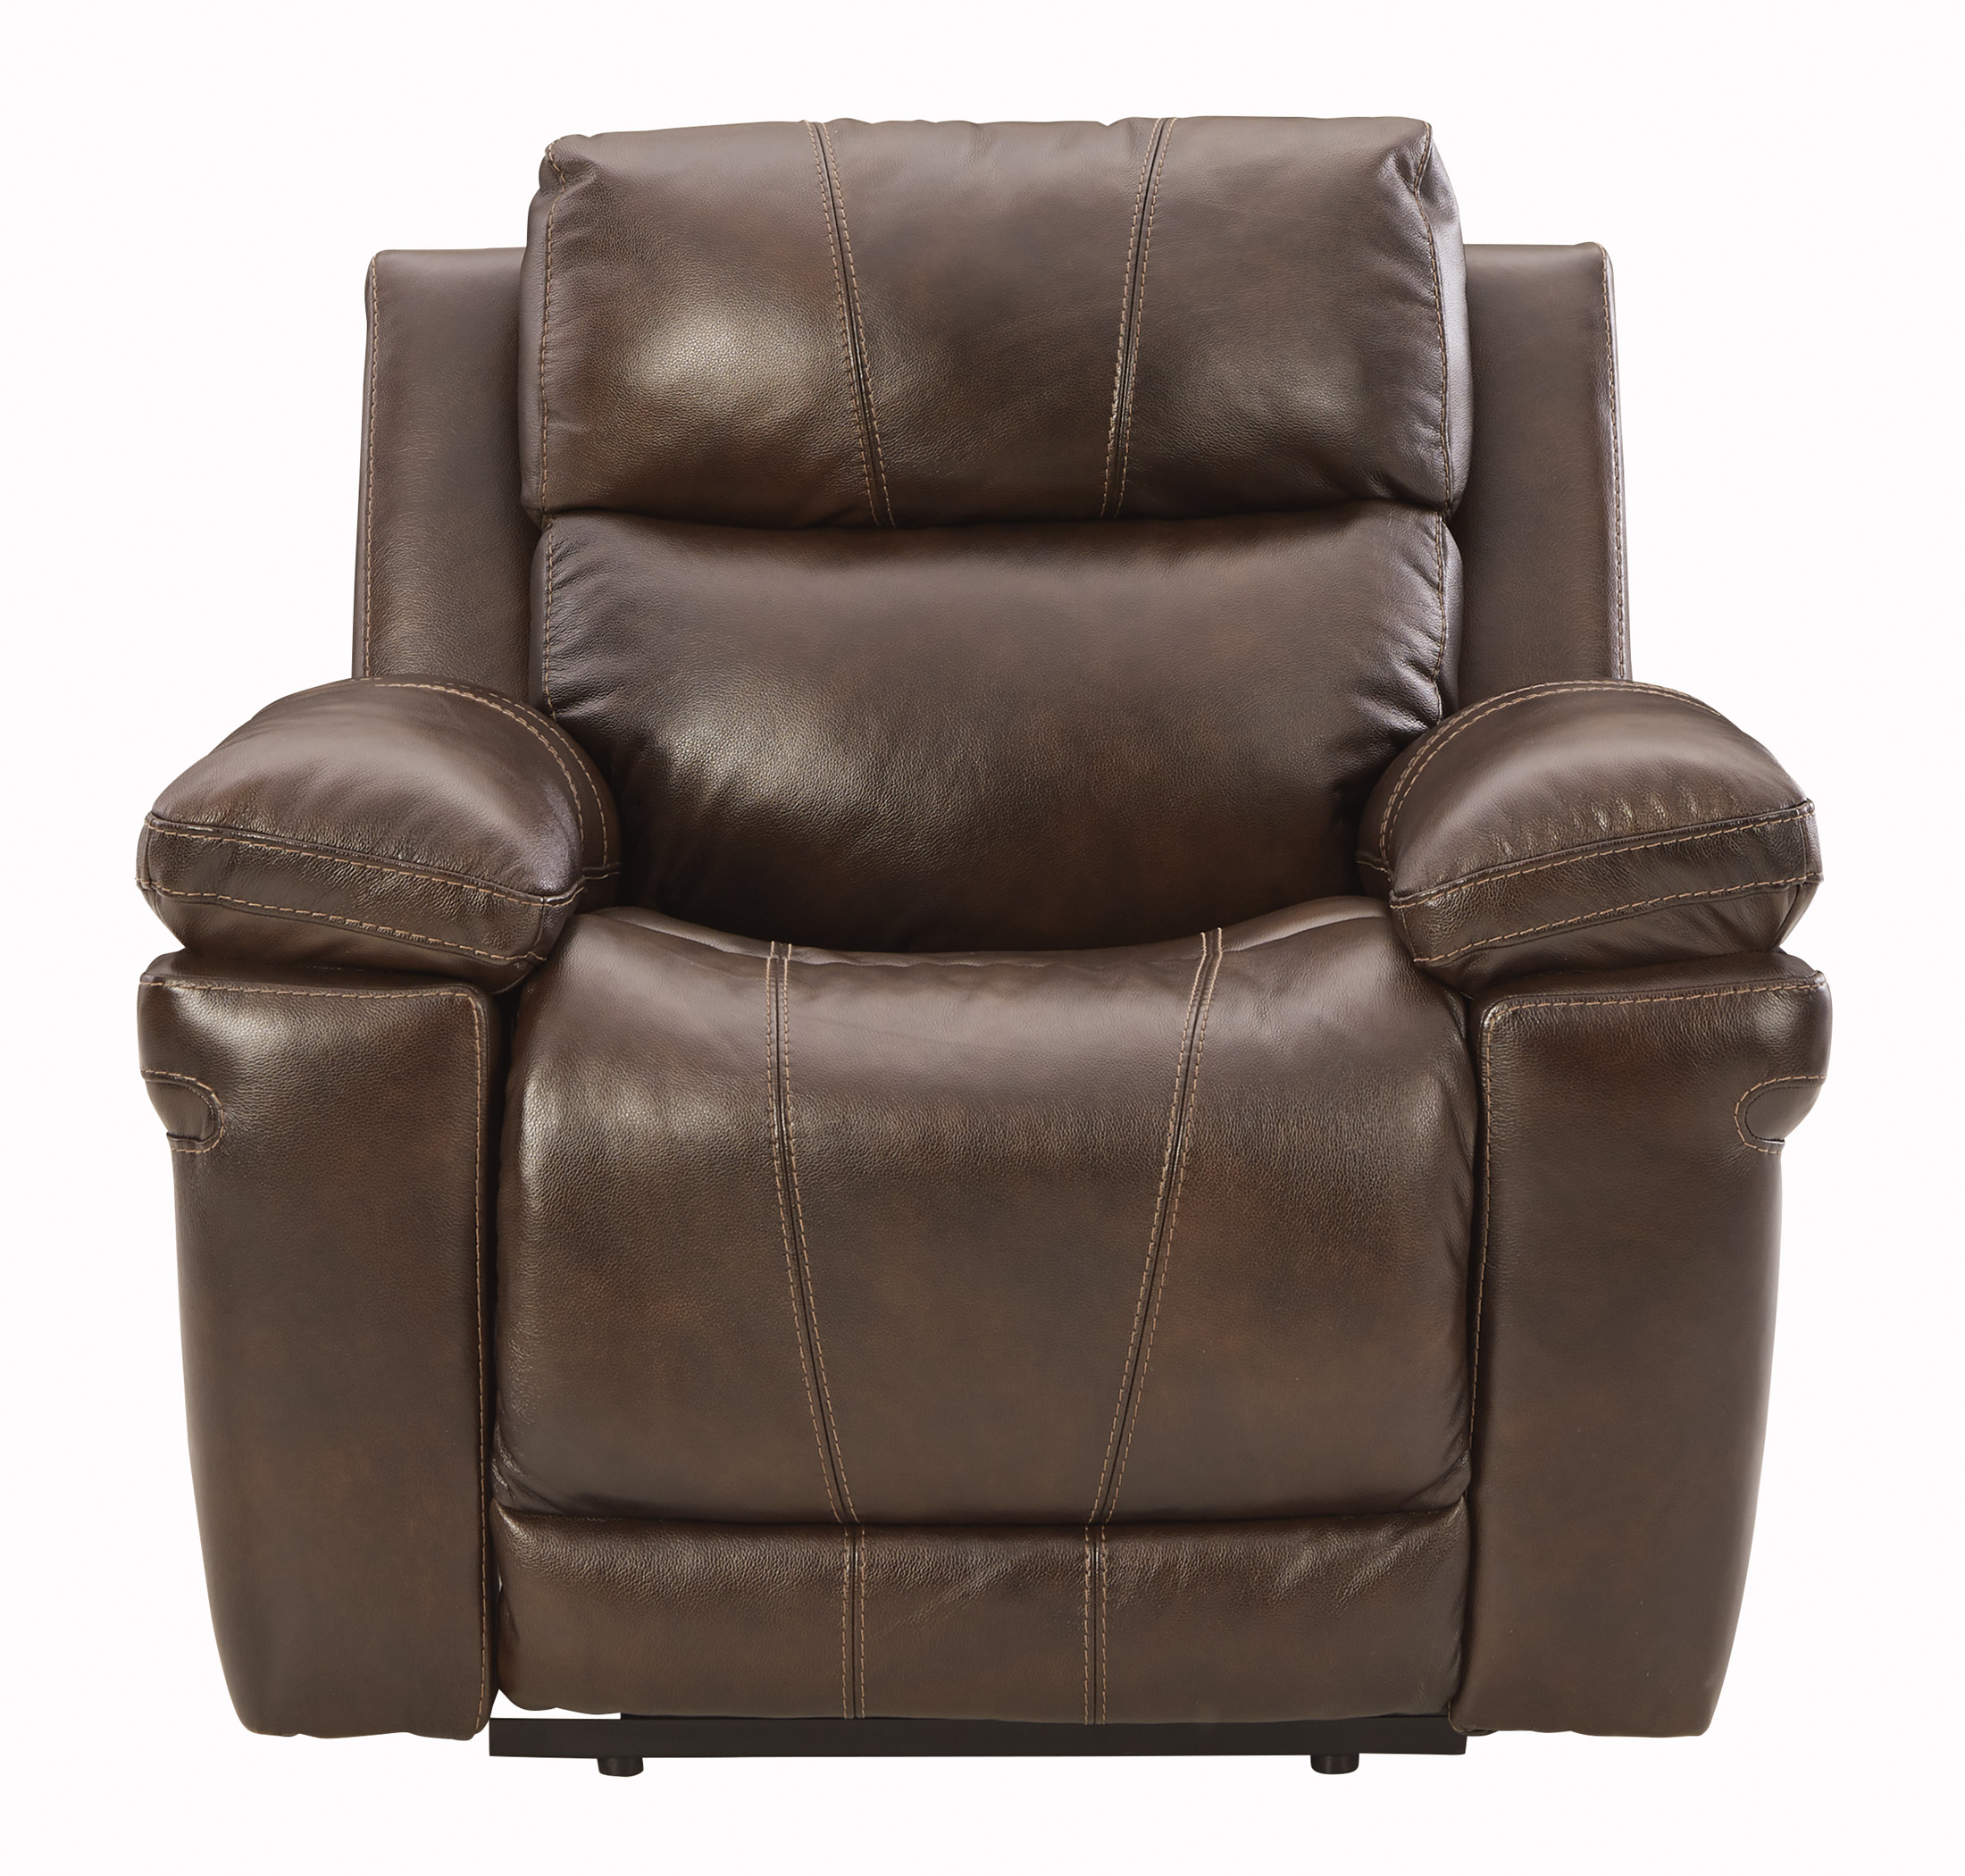 Edmar Power Recliner with Power Headrest by Signature Design by Ashley at Westrich Furniture & Appliances